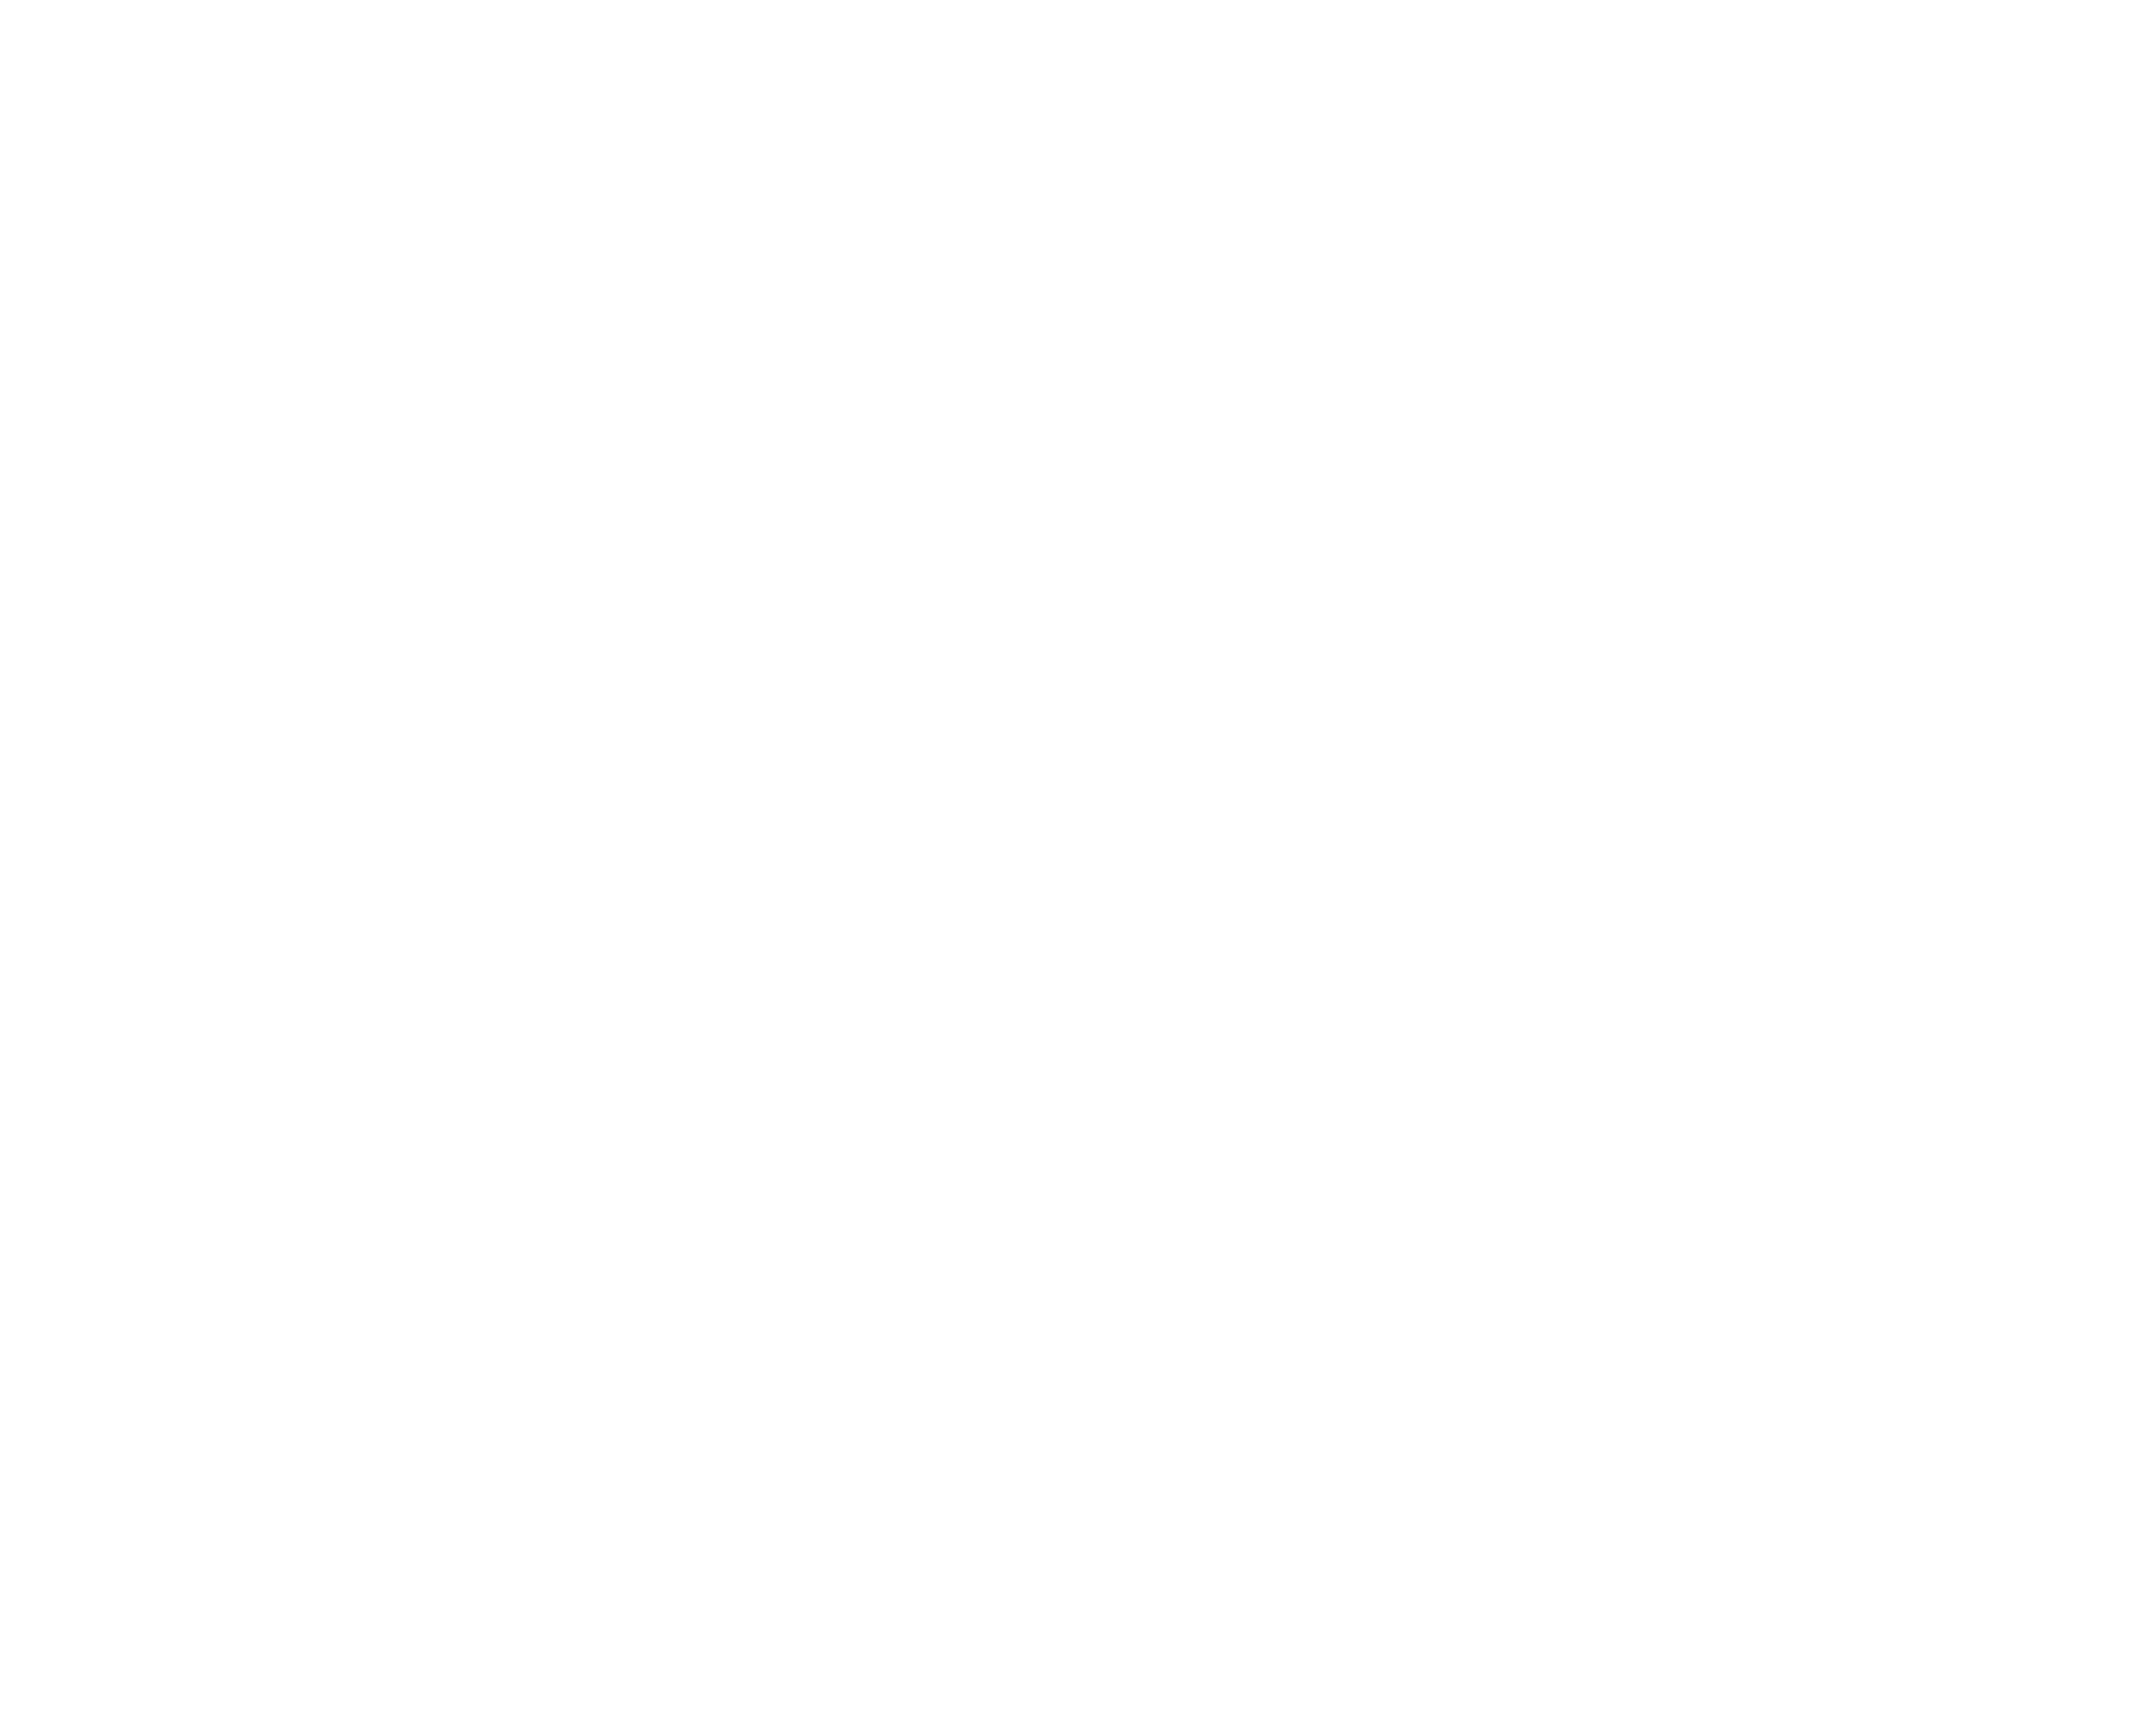 FocusHawk_Simple_Vertical_White on Transparent